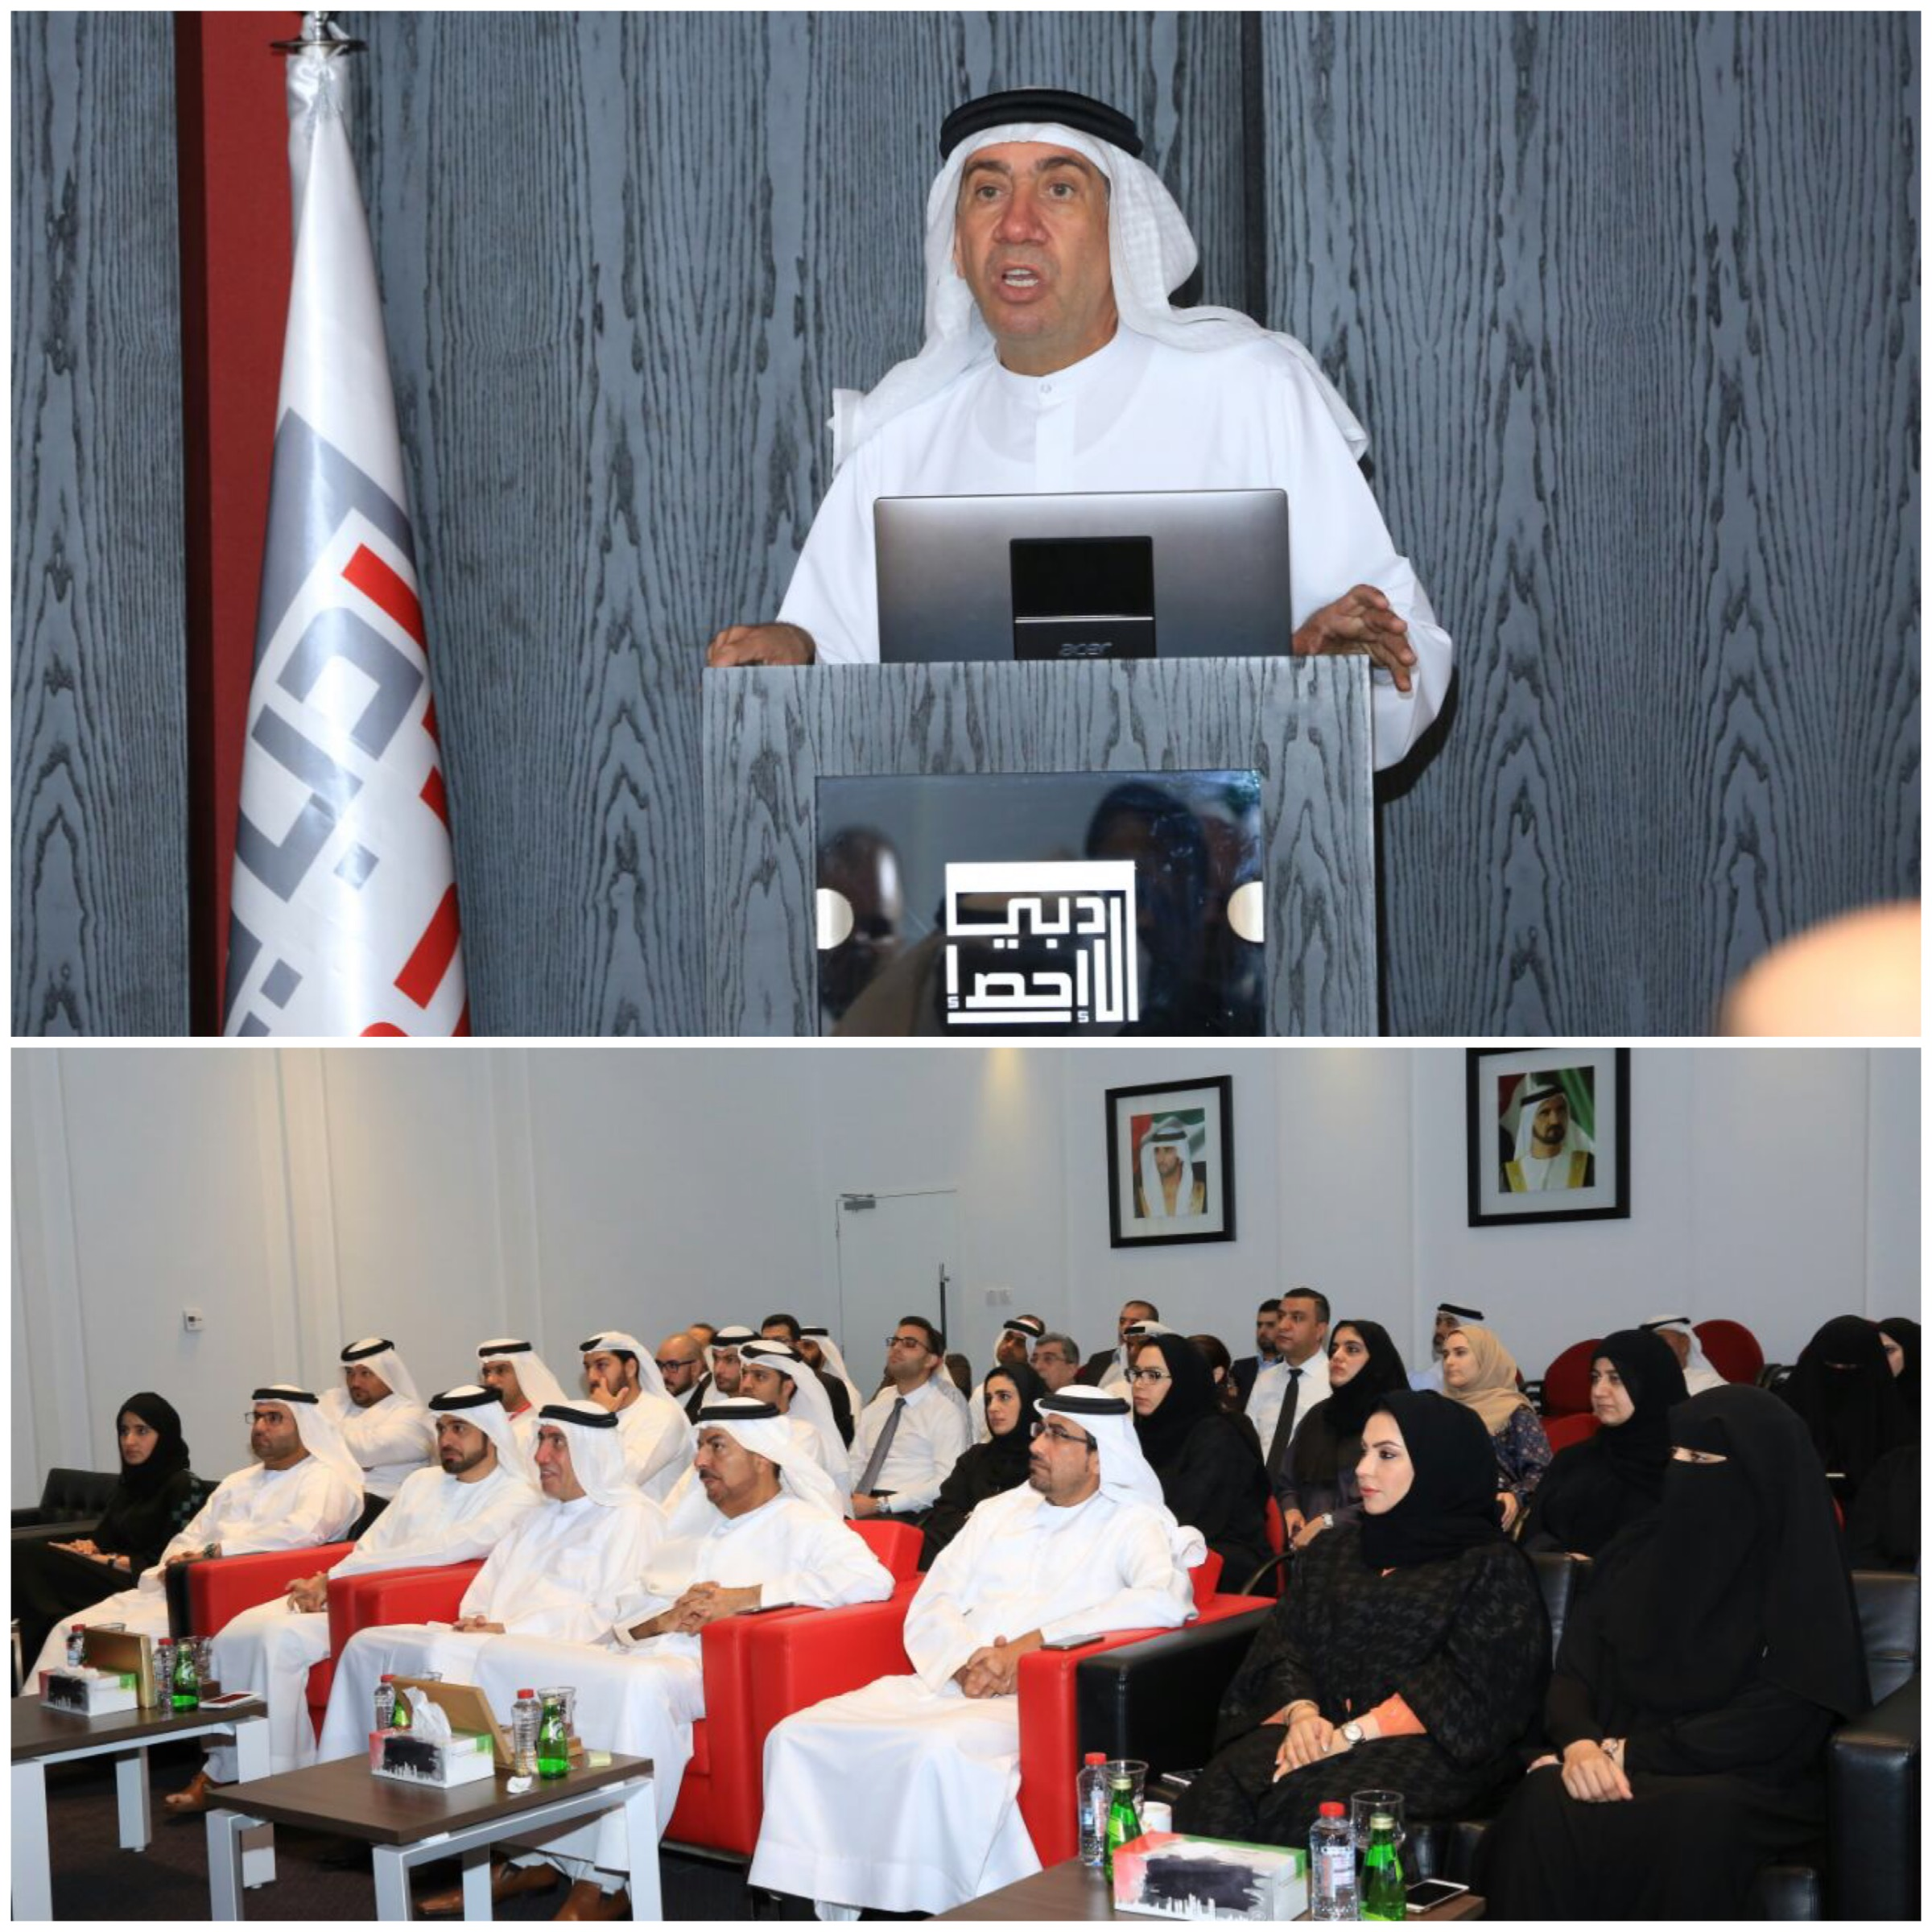 ​Image : Nuseirat and Al Muhairi and Al Janahi and DSC staff during the Fourth Generation Forum